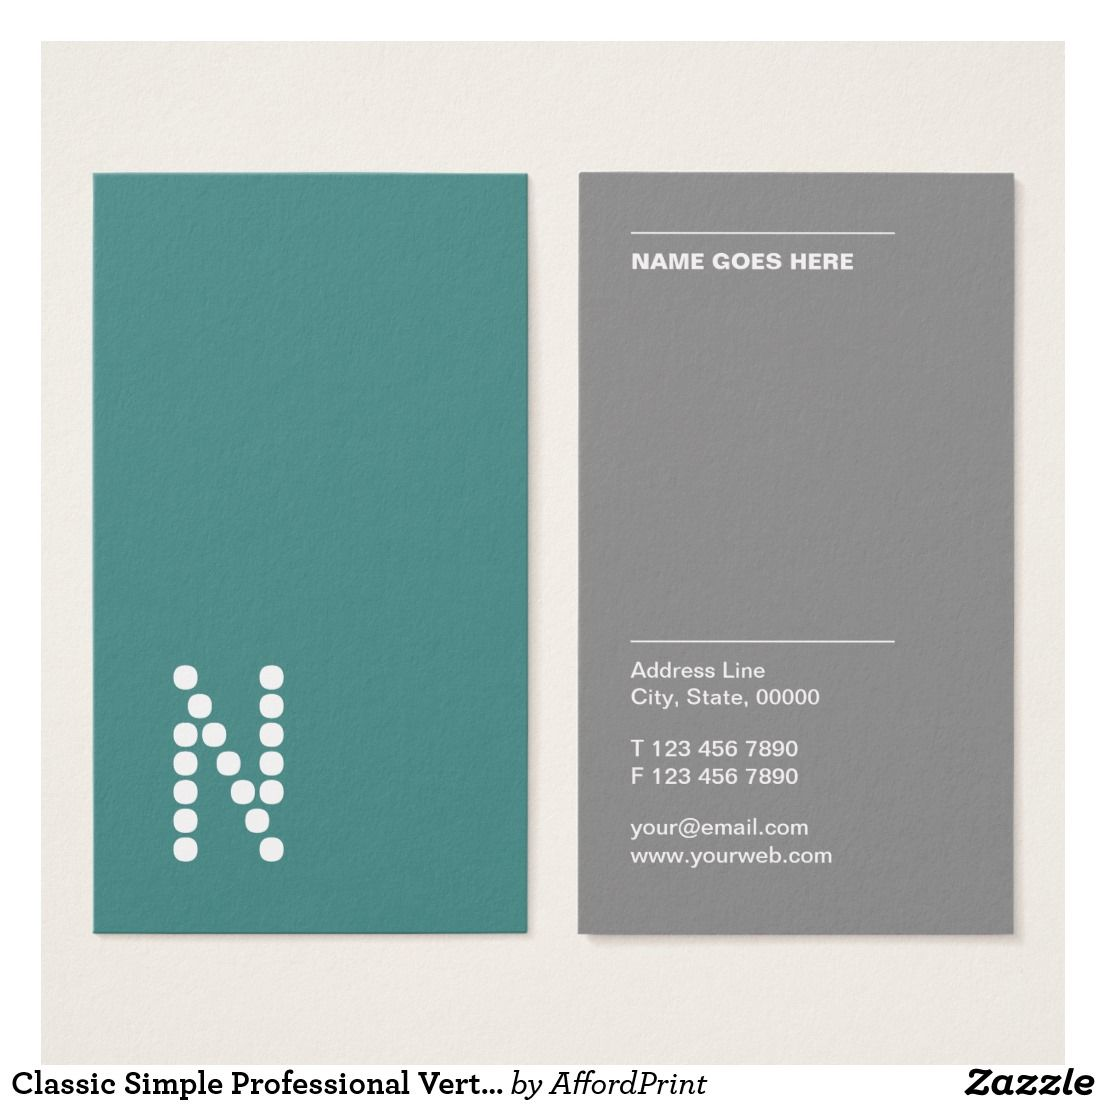 Classic Simple Professional Vertical Business Card Zazzle Com Vertical Business Cards Name Card Design Customizable Business Cards